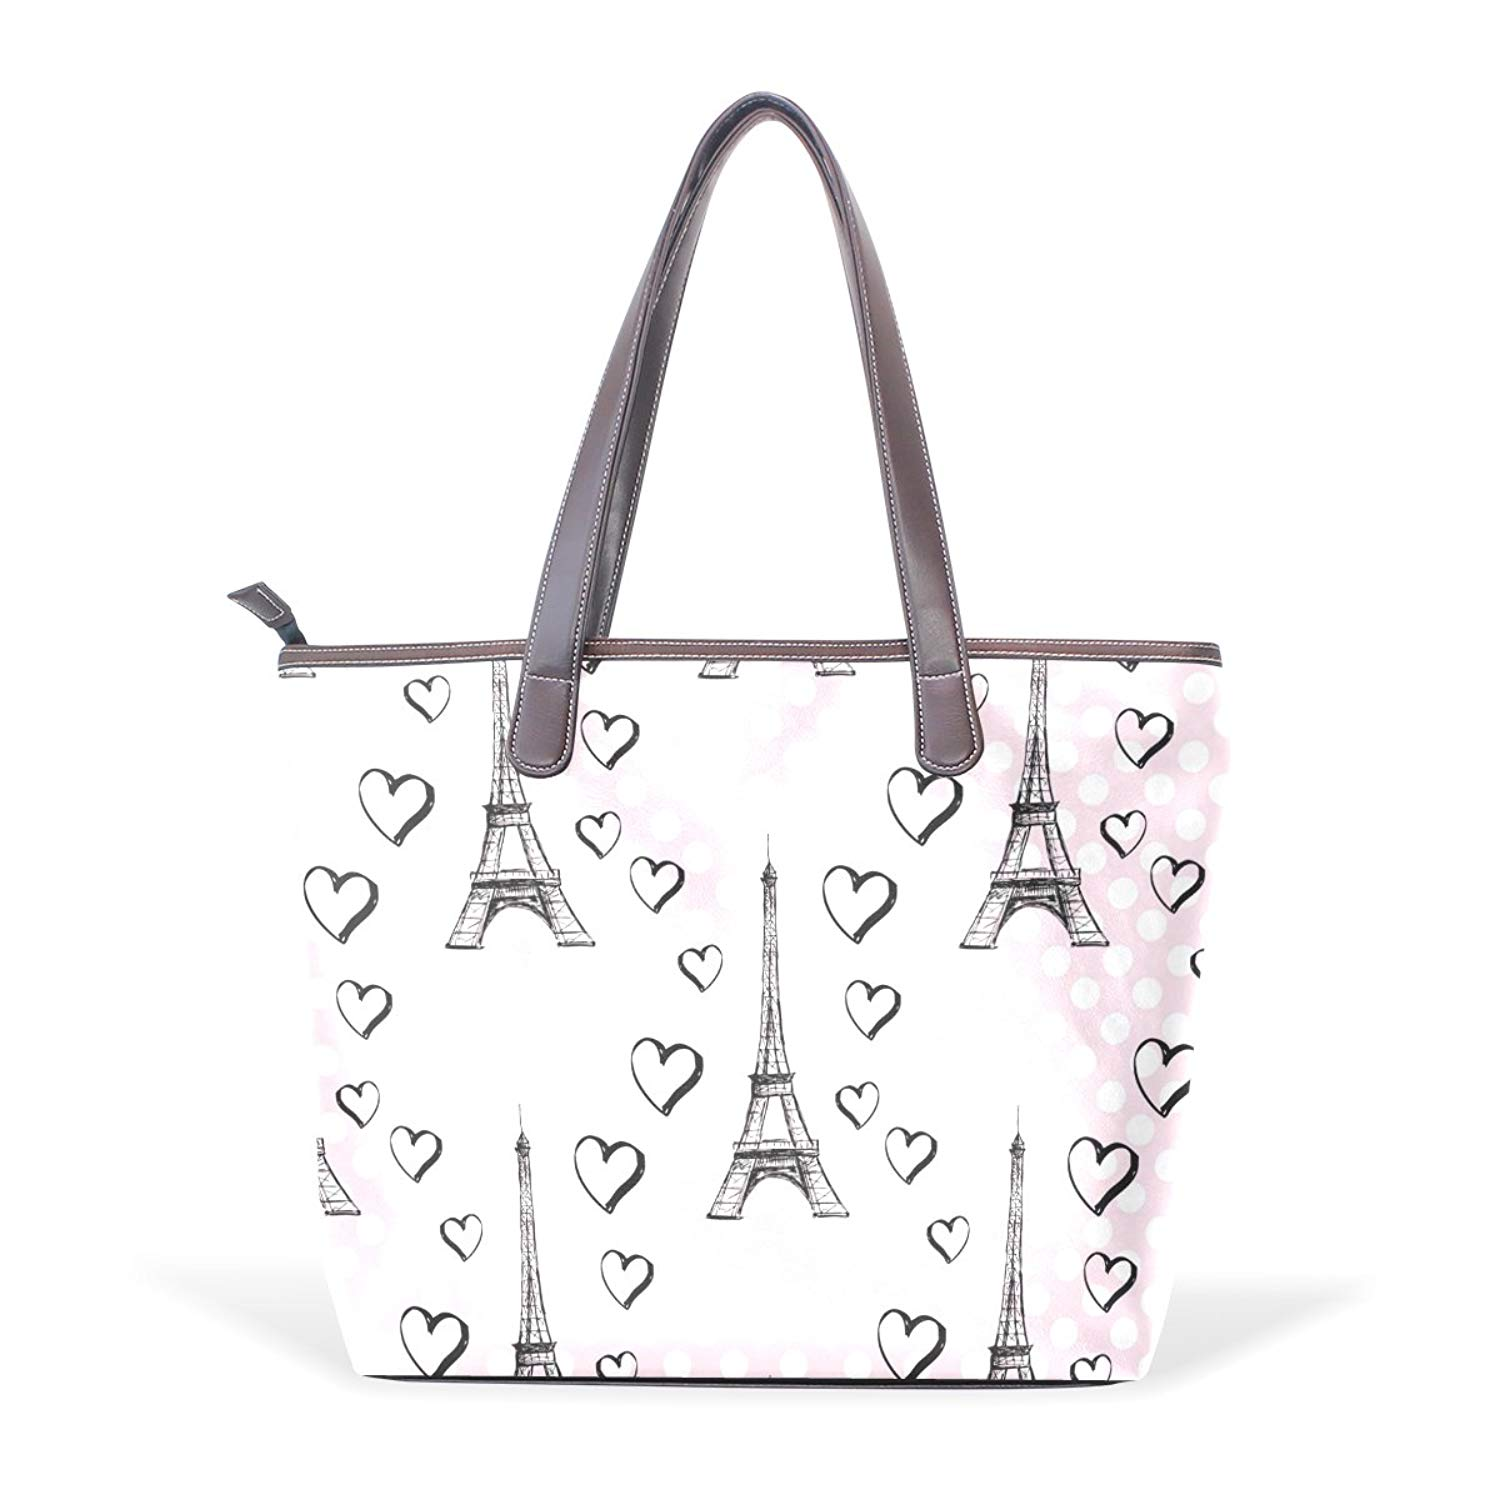 4fd5c52b95aa Get Quotations · Dragon Sword Paris Eiffel Tower With Hearts Women Handbags  Hobo Shoulder Bags Tote PU Leather Handbags